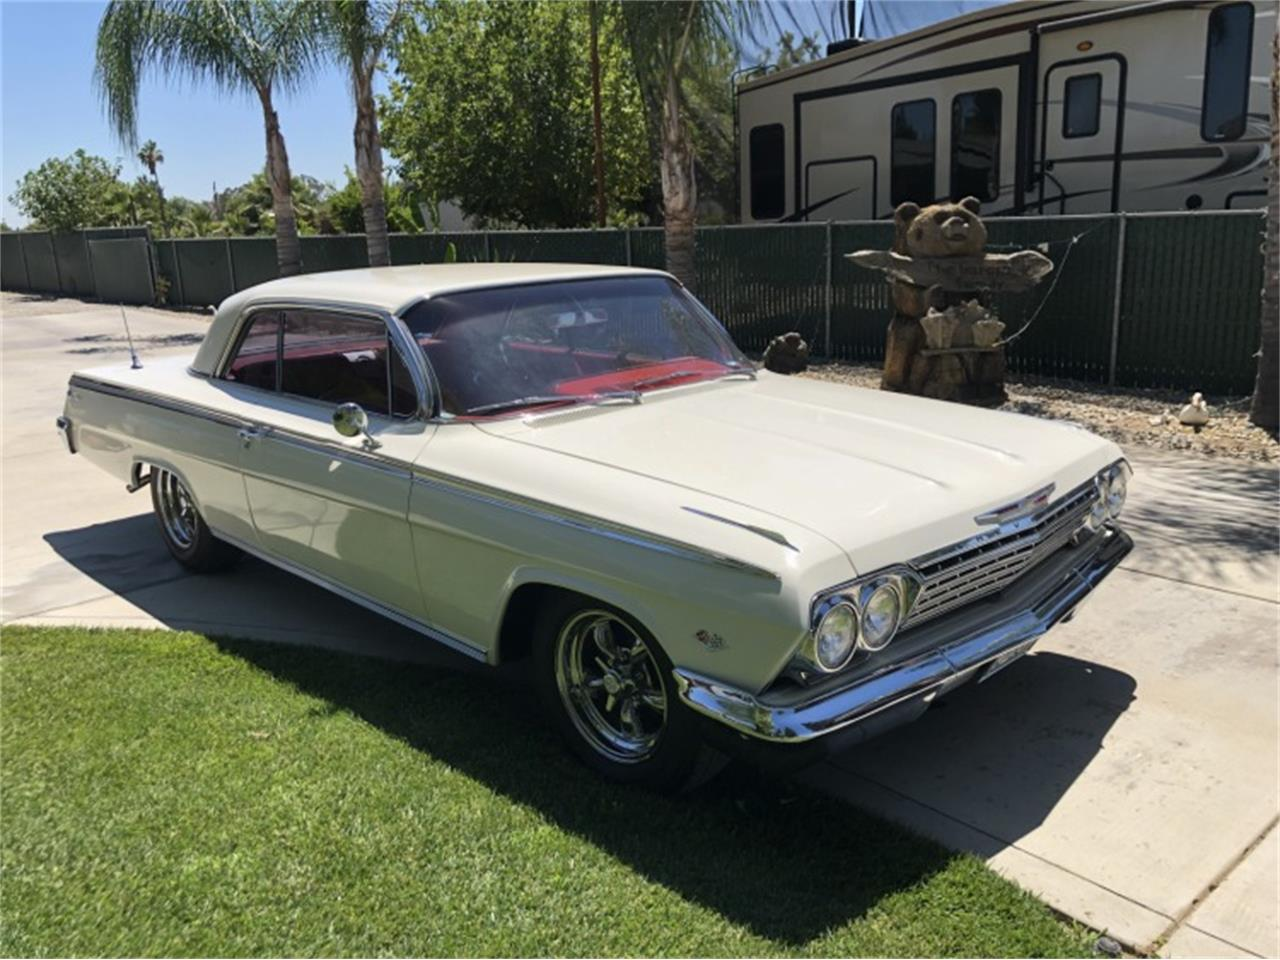 Large Picture of '62 Chevrolet Impala SS located in Sparks Nevada Auction Vehicle Offered by Motorsport Auction Group 797664 - QIEP